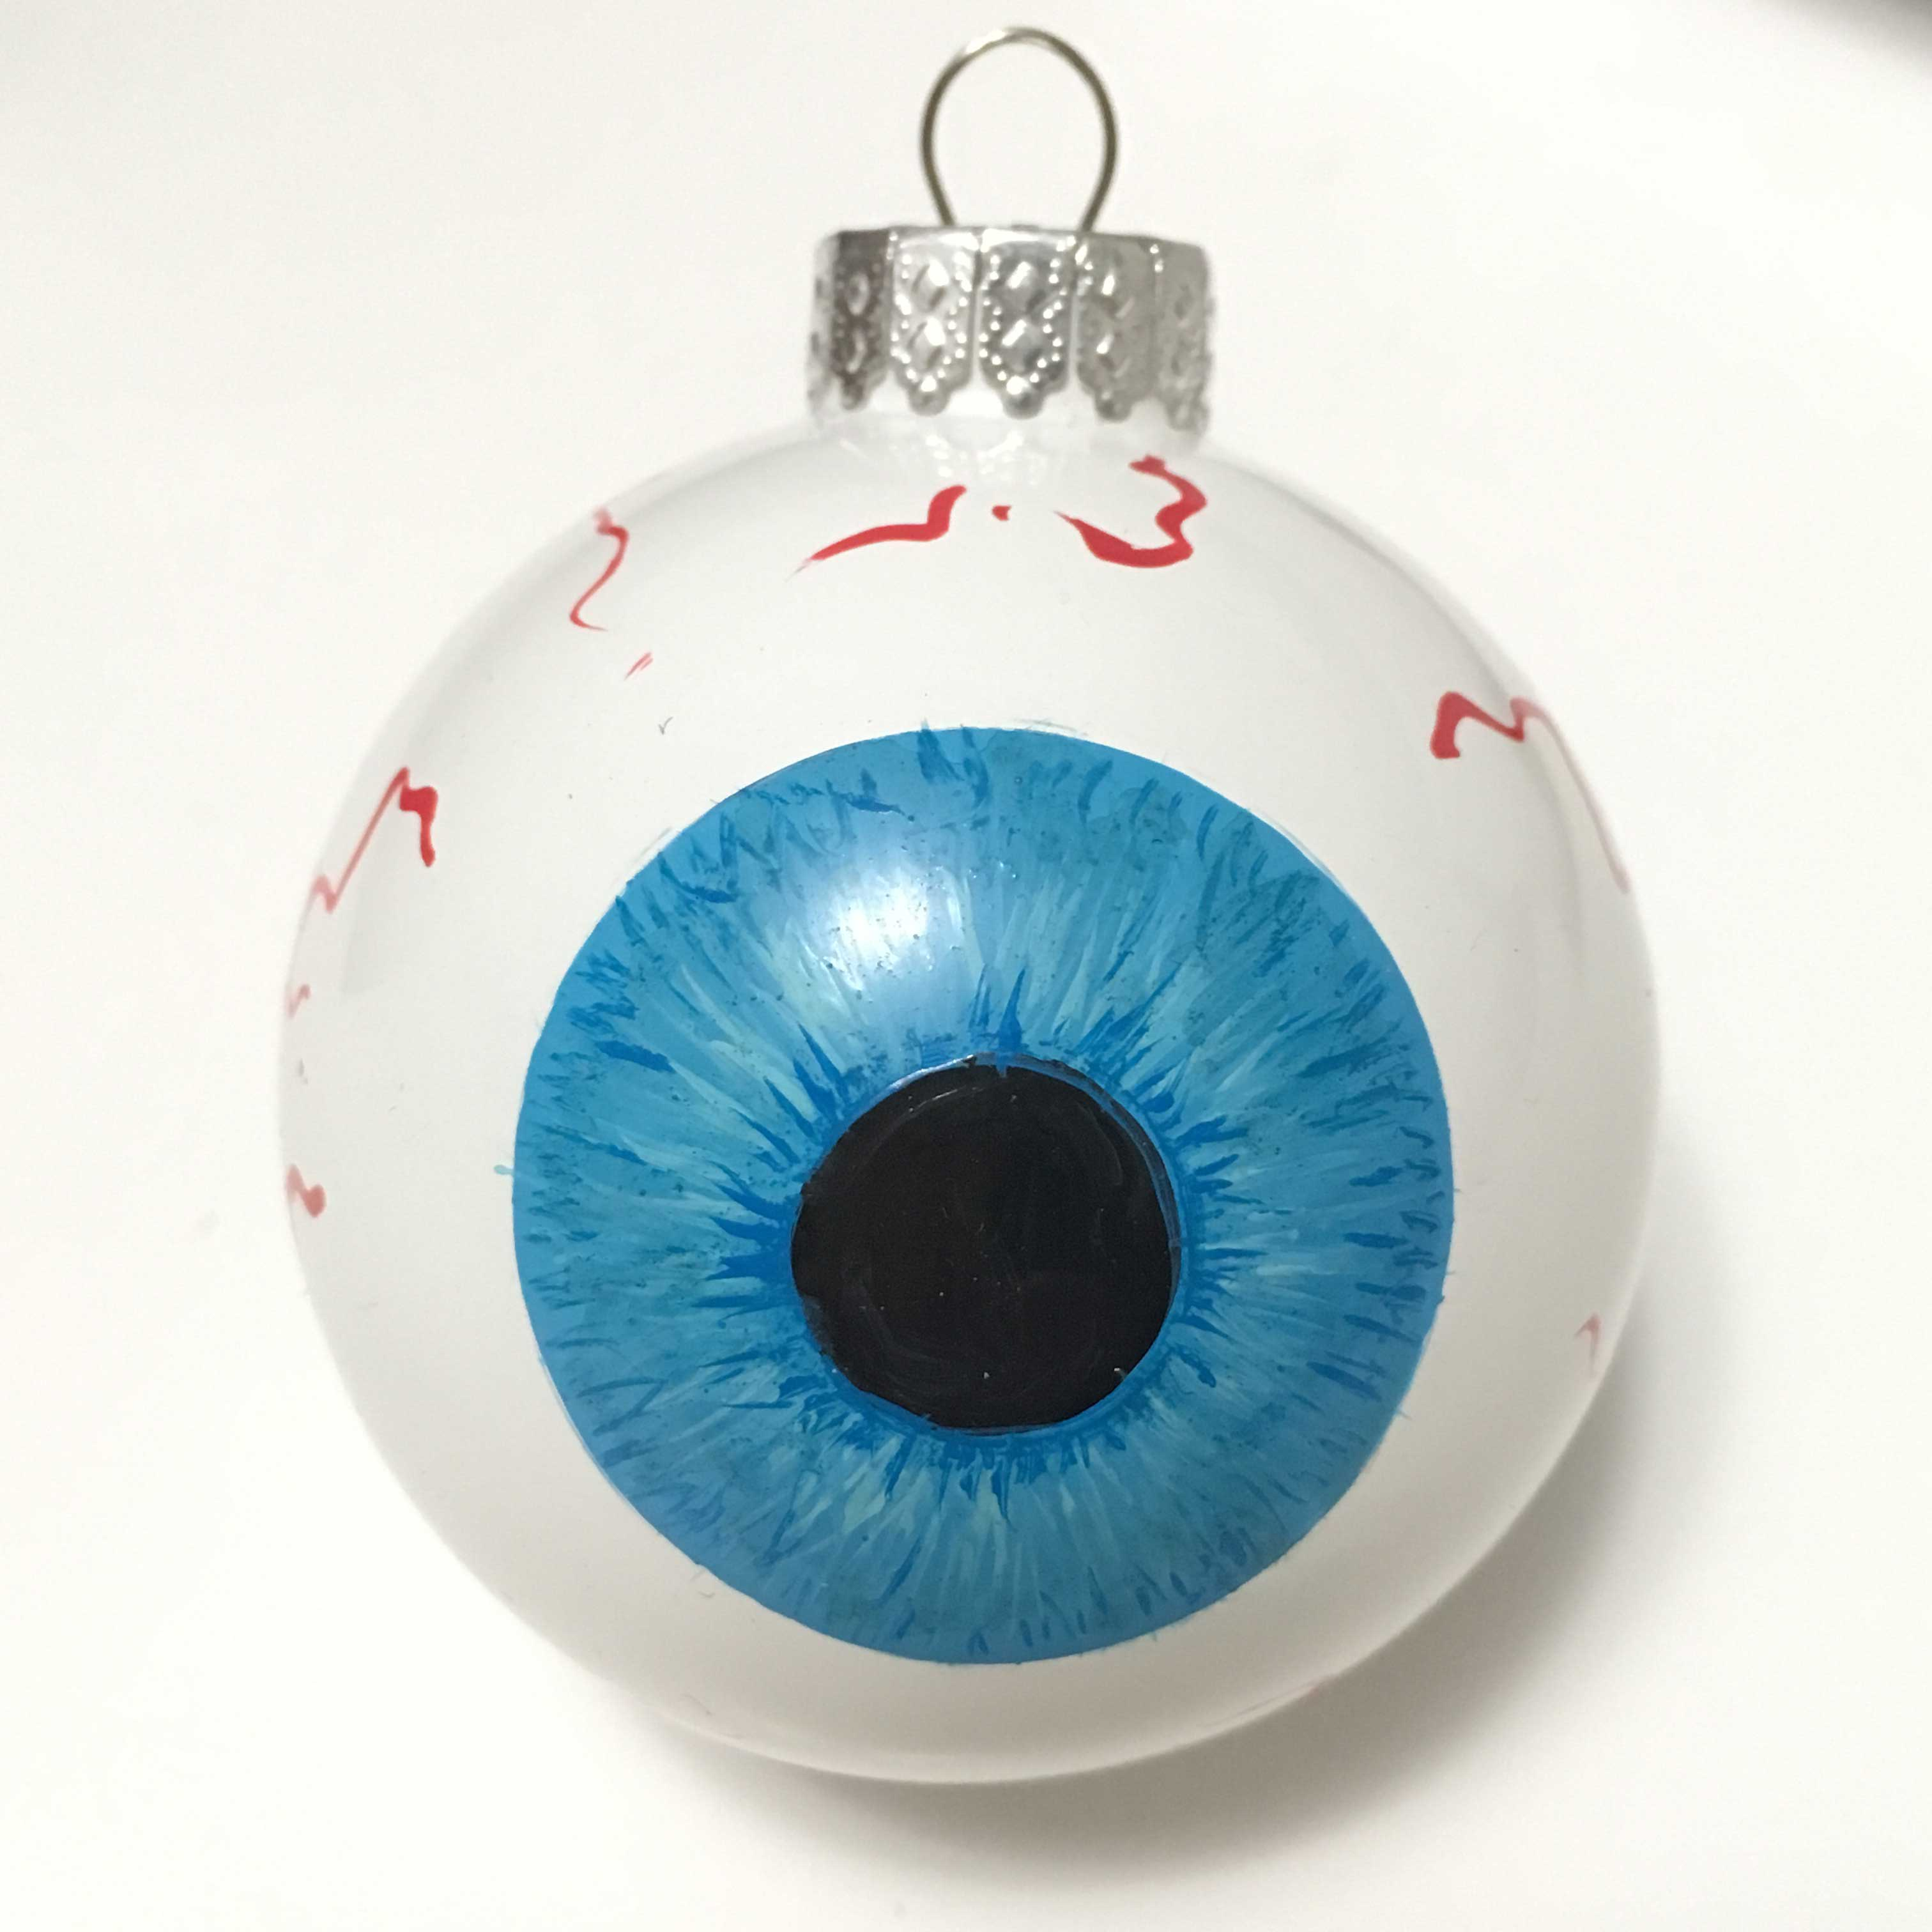 blue iris eyeball eye ornament